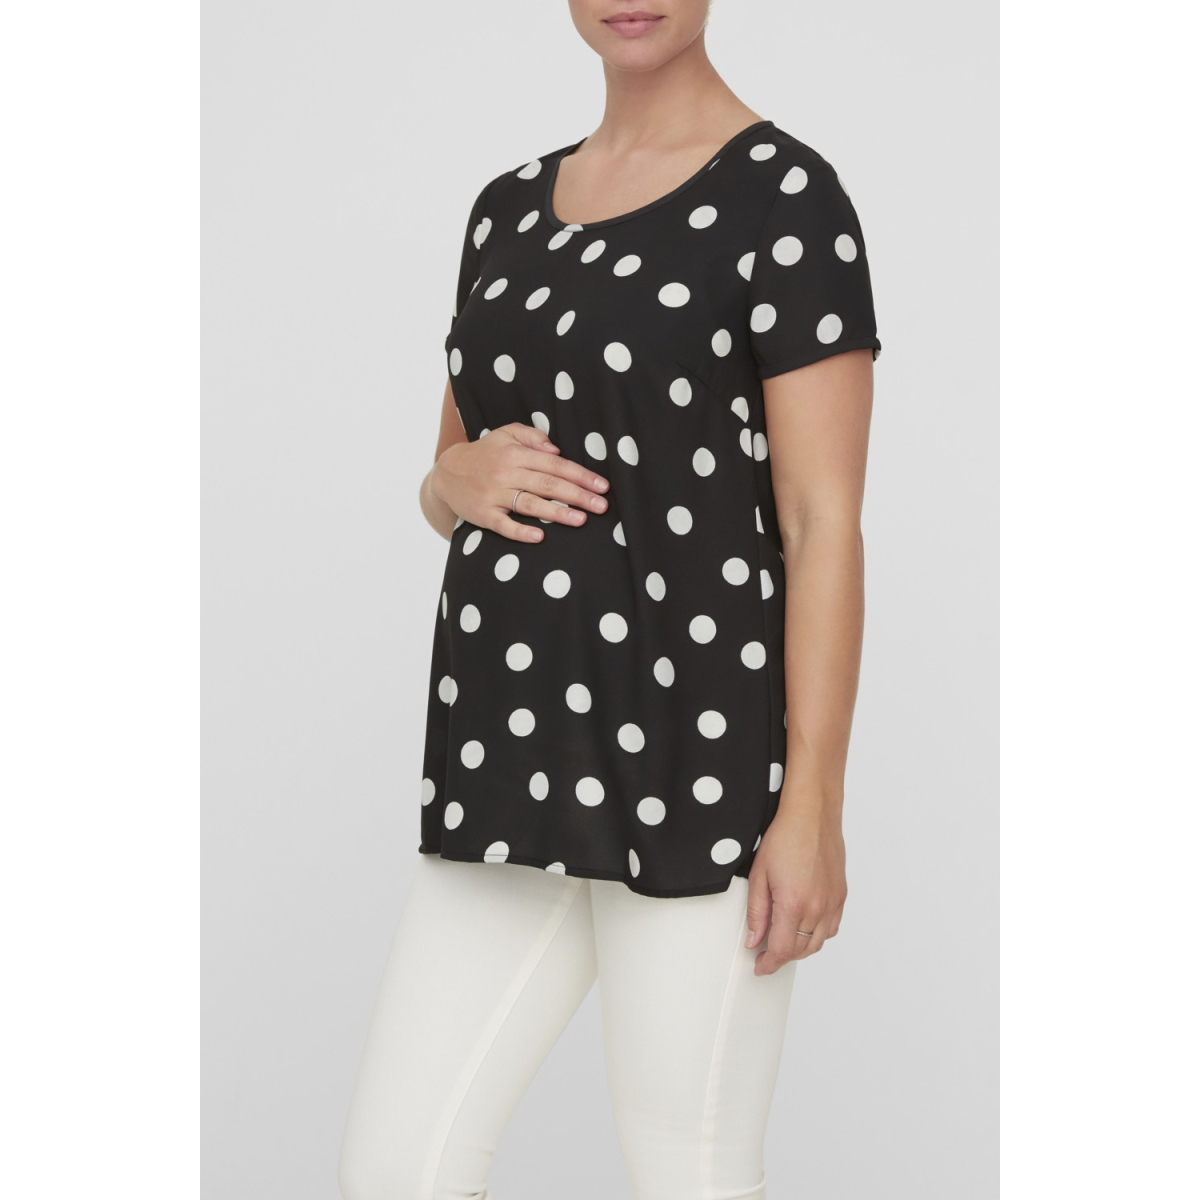 mlhacket s/s woven top 20007999 mama-licious positie shirt black